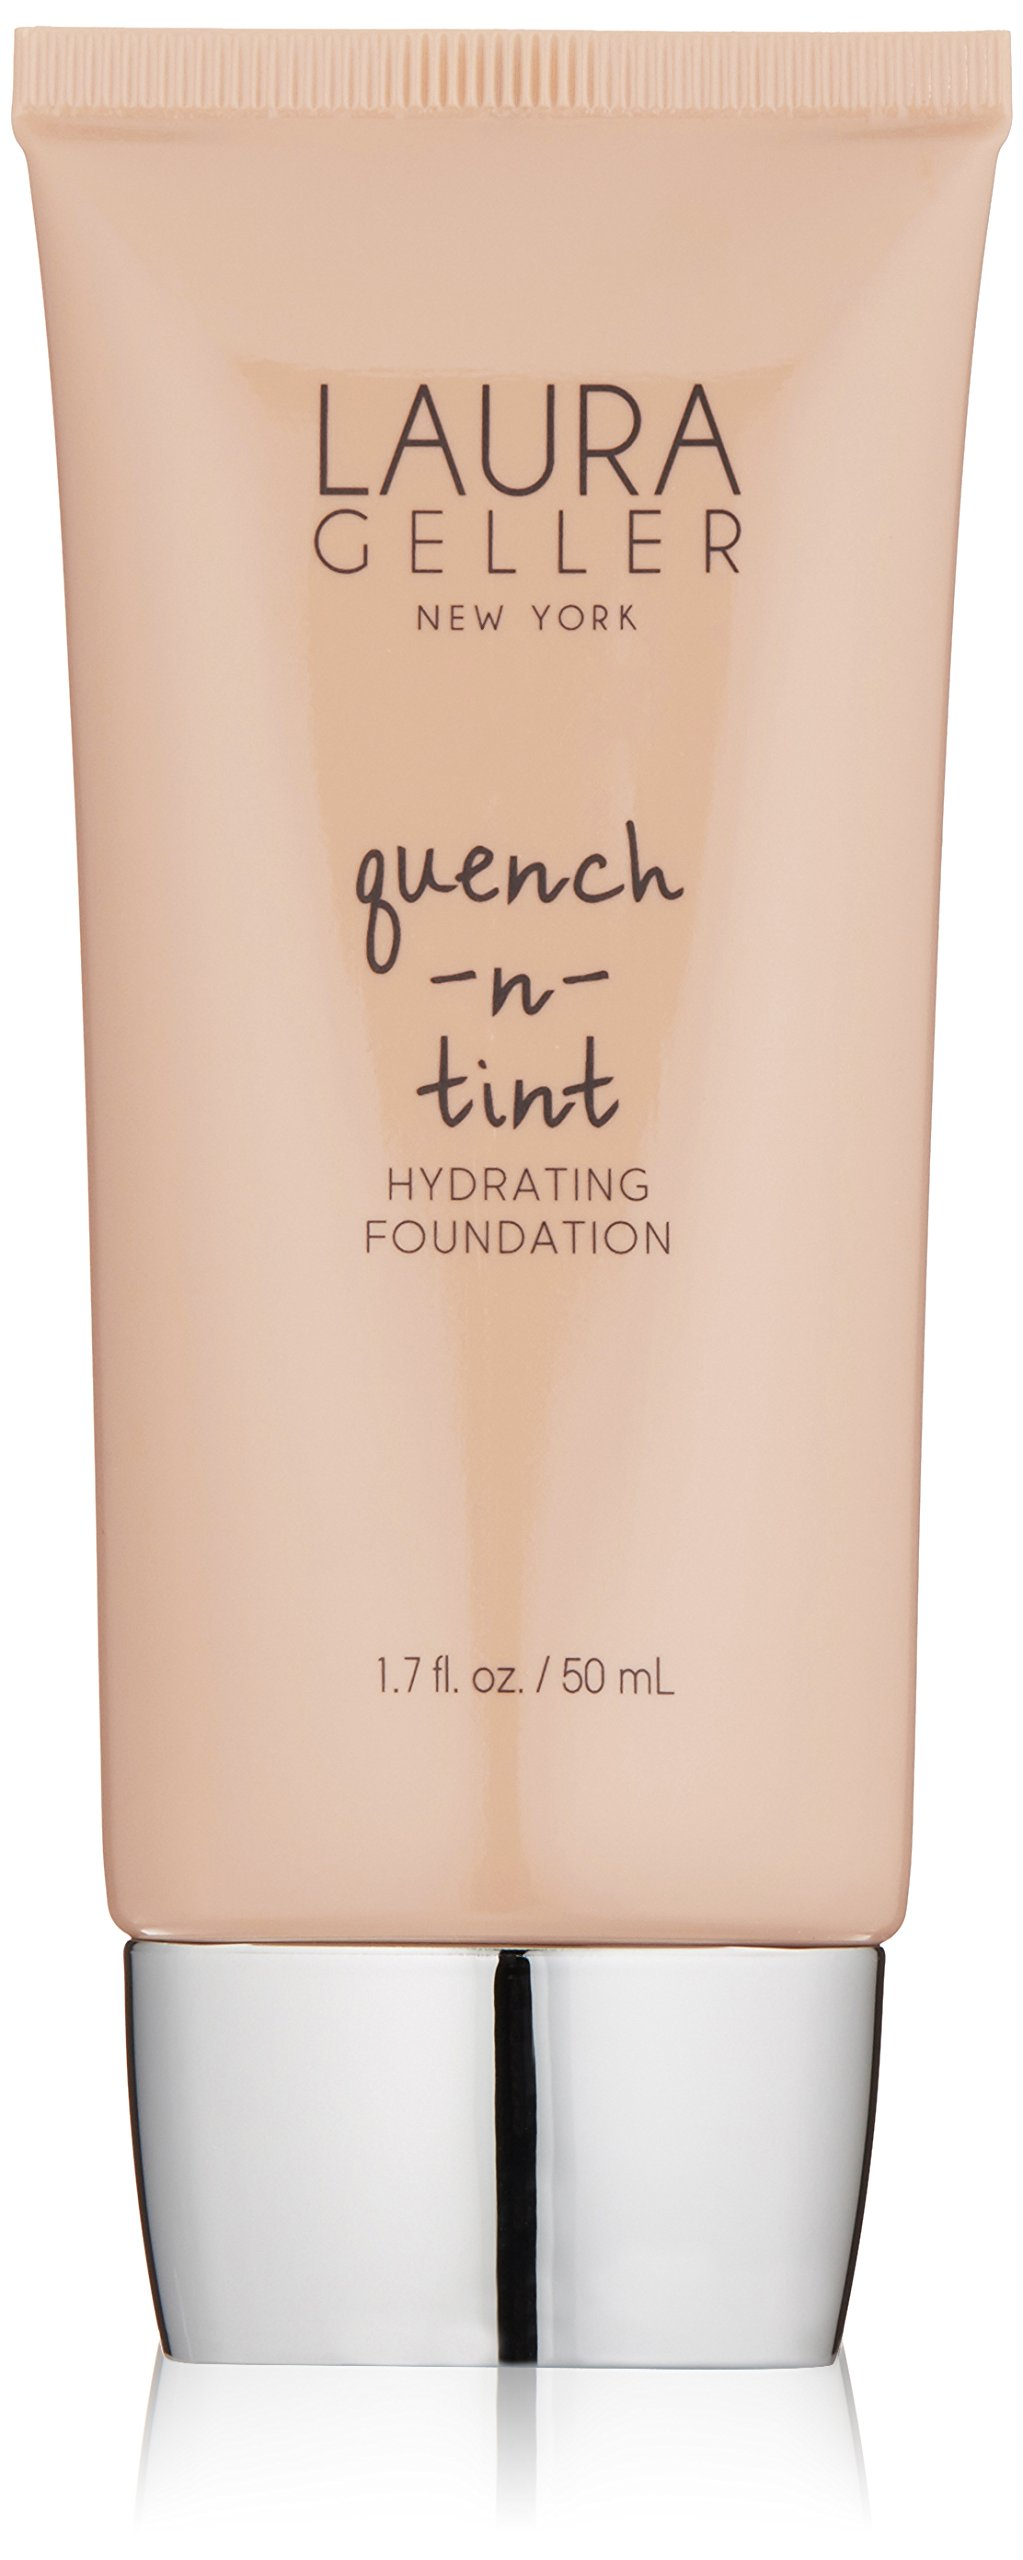 Laura Geller New York Quench-n-Tint Hydrating Foundation